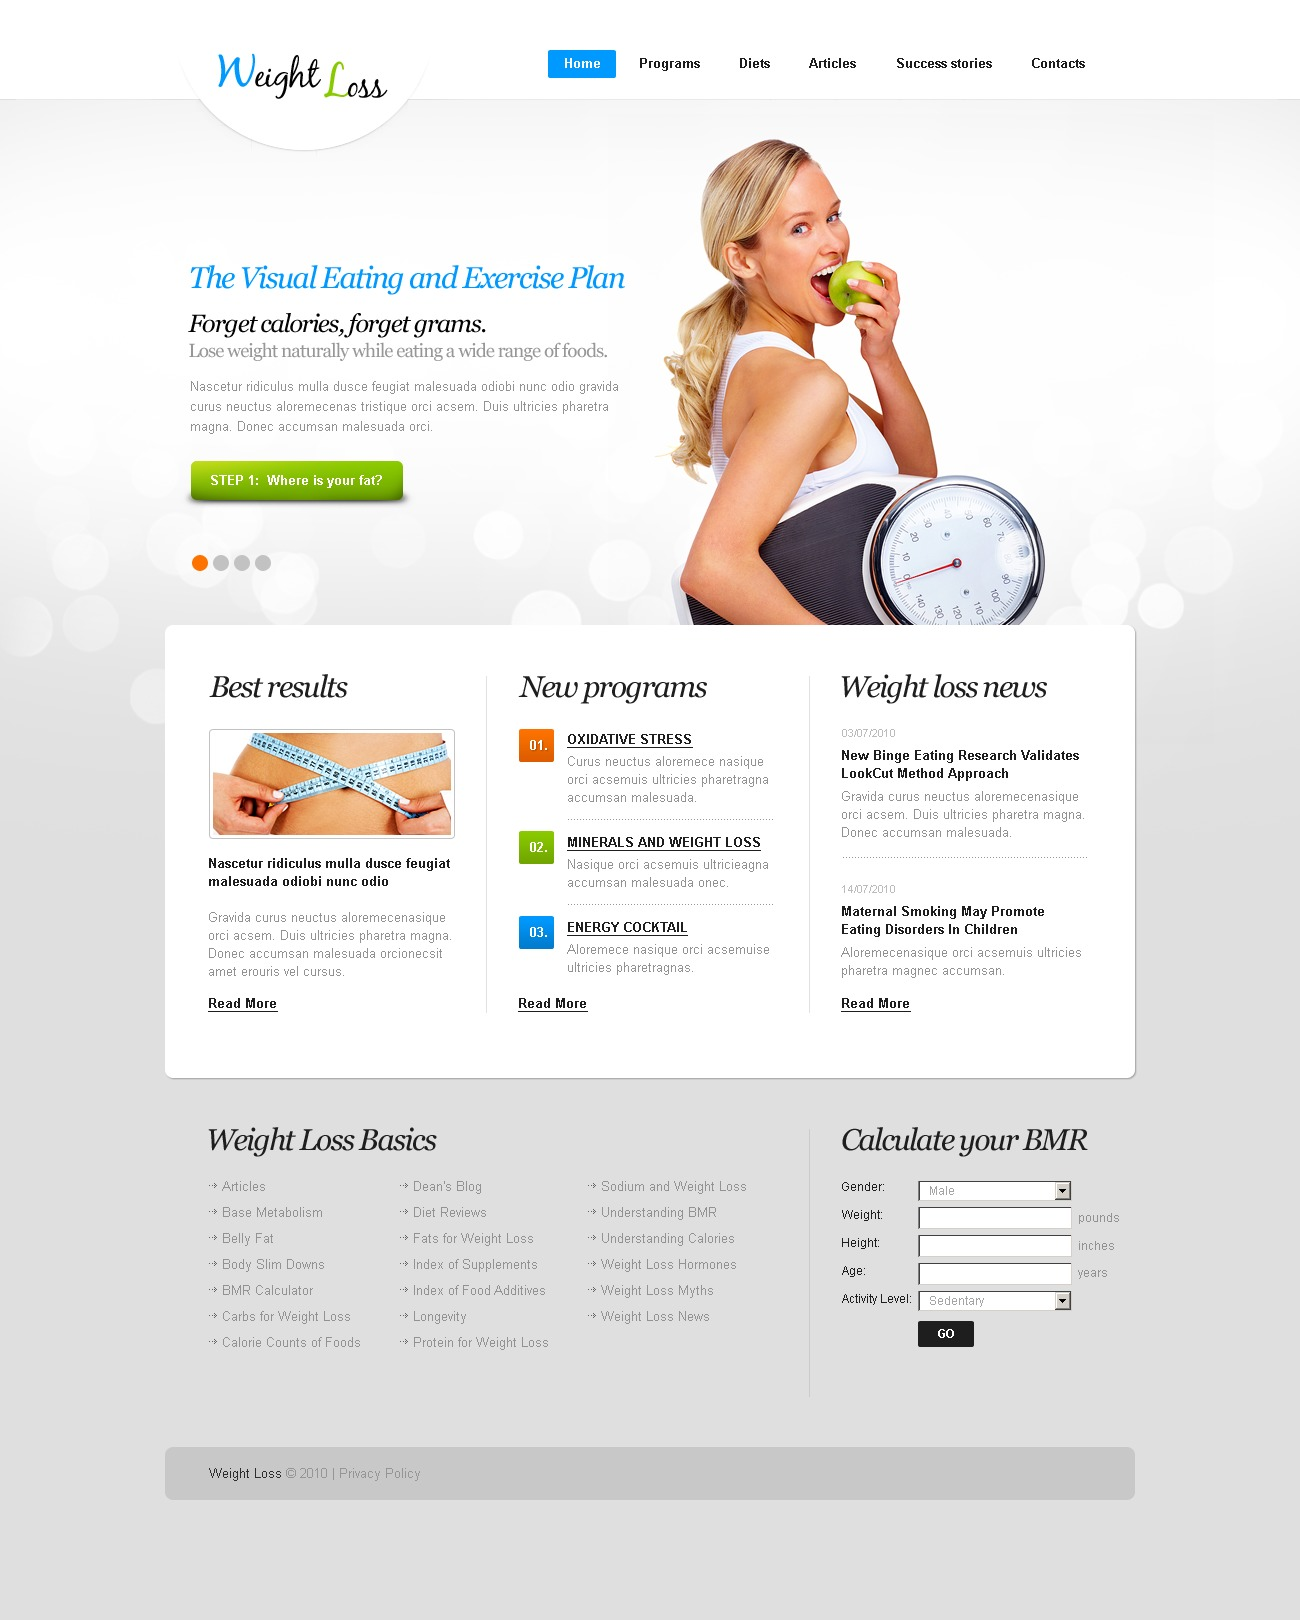 The Weight Loss PSD Design 54413, one of the best PSD templates of its kind (beauty, medical, most popular, flash 8, wide), also known as weight loss PSD template, online diet PSD template, site PSD template, invalid PSD template, food PSD template, recipe PSD template, service PSD template, planning PSD template, product PSD template, consulting PSD template, health care PSD template, medicine PSD template, doctor PSD template, patient PSD template, tablet PSD template, drug PSD template, biotechnology PSD template, protein PSD template, therapeutic PSD template, medical nutrition PSD template, prescription PSD template, vitamin PSD template, product PSD template, fruit PSD template, drink PSD template, order PSD template, energy PSD template, life PSD template, training and related with weight loss, online diet, site, invalid, food, recipe, service, planning, product, consulting, health care, medicine, doctor, patient, tablet, drug, biotechnology, protein, therapeutic, medical nutrition, prescription, vitamin, product, fruit, drink, order, energy, life, training, etc.